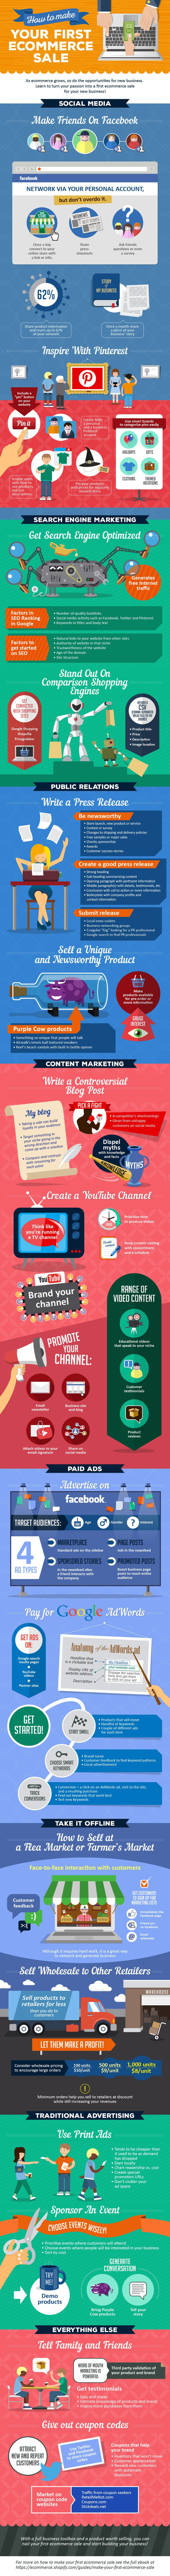 Digital-Marketing-How-to-Make-Your-First-eCommerce-Sale-infographic-Social-Media-SEO-Conten Digital Marketing : How to Make Your First eCommerce Sale - #infographic #Social Media, #SEO #Conten...